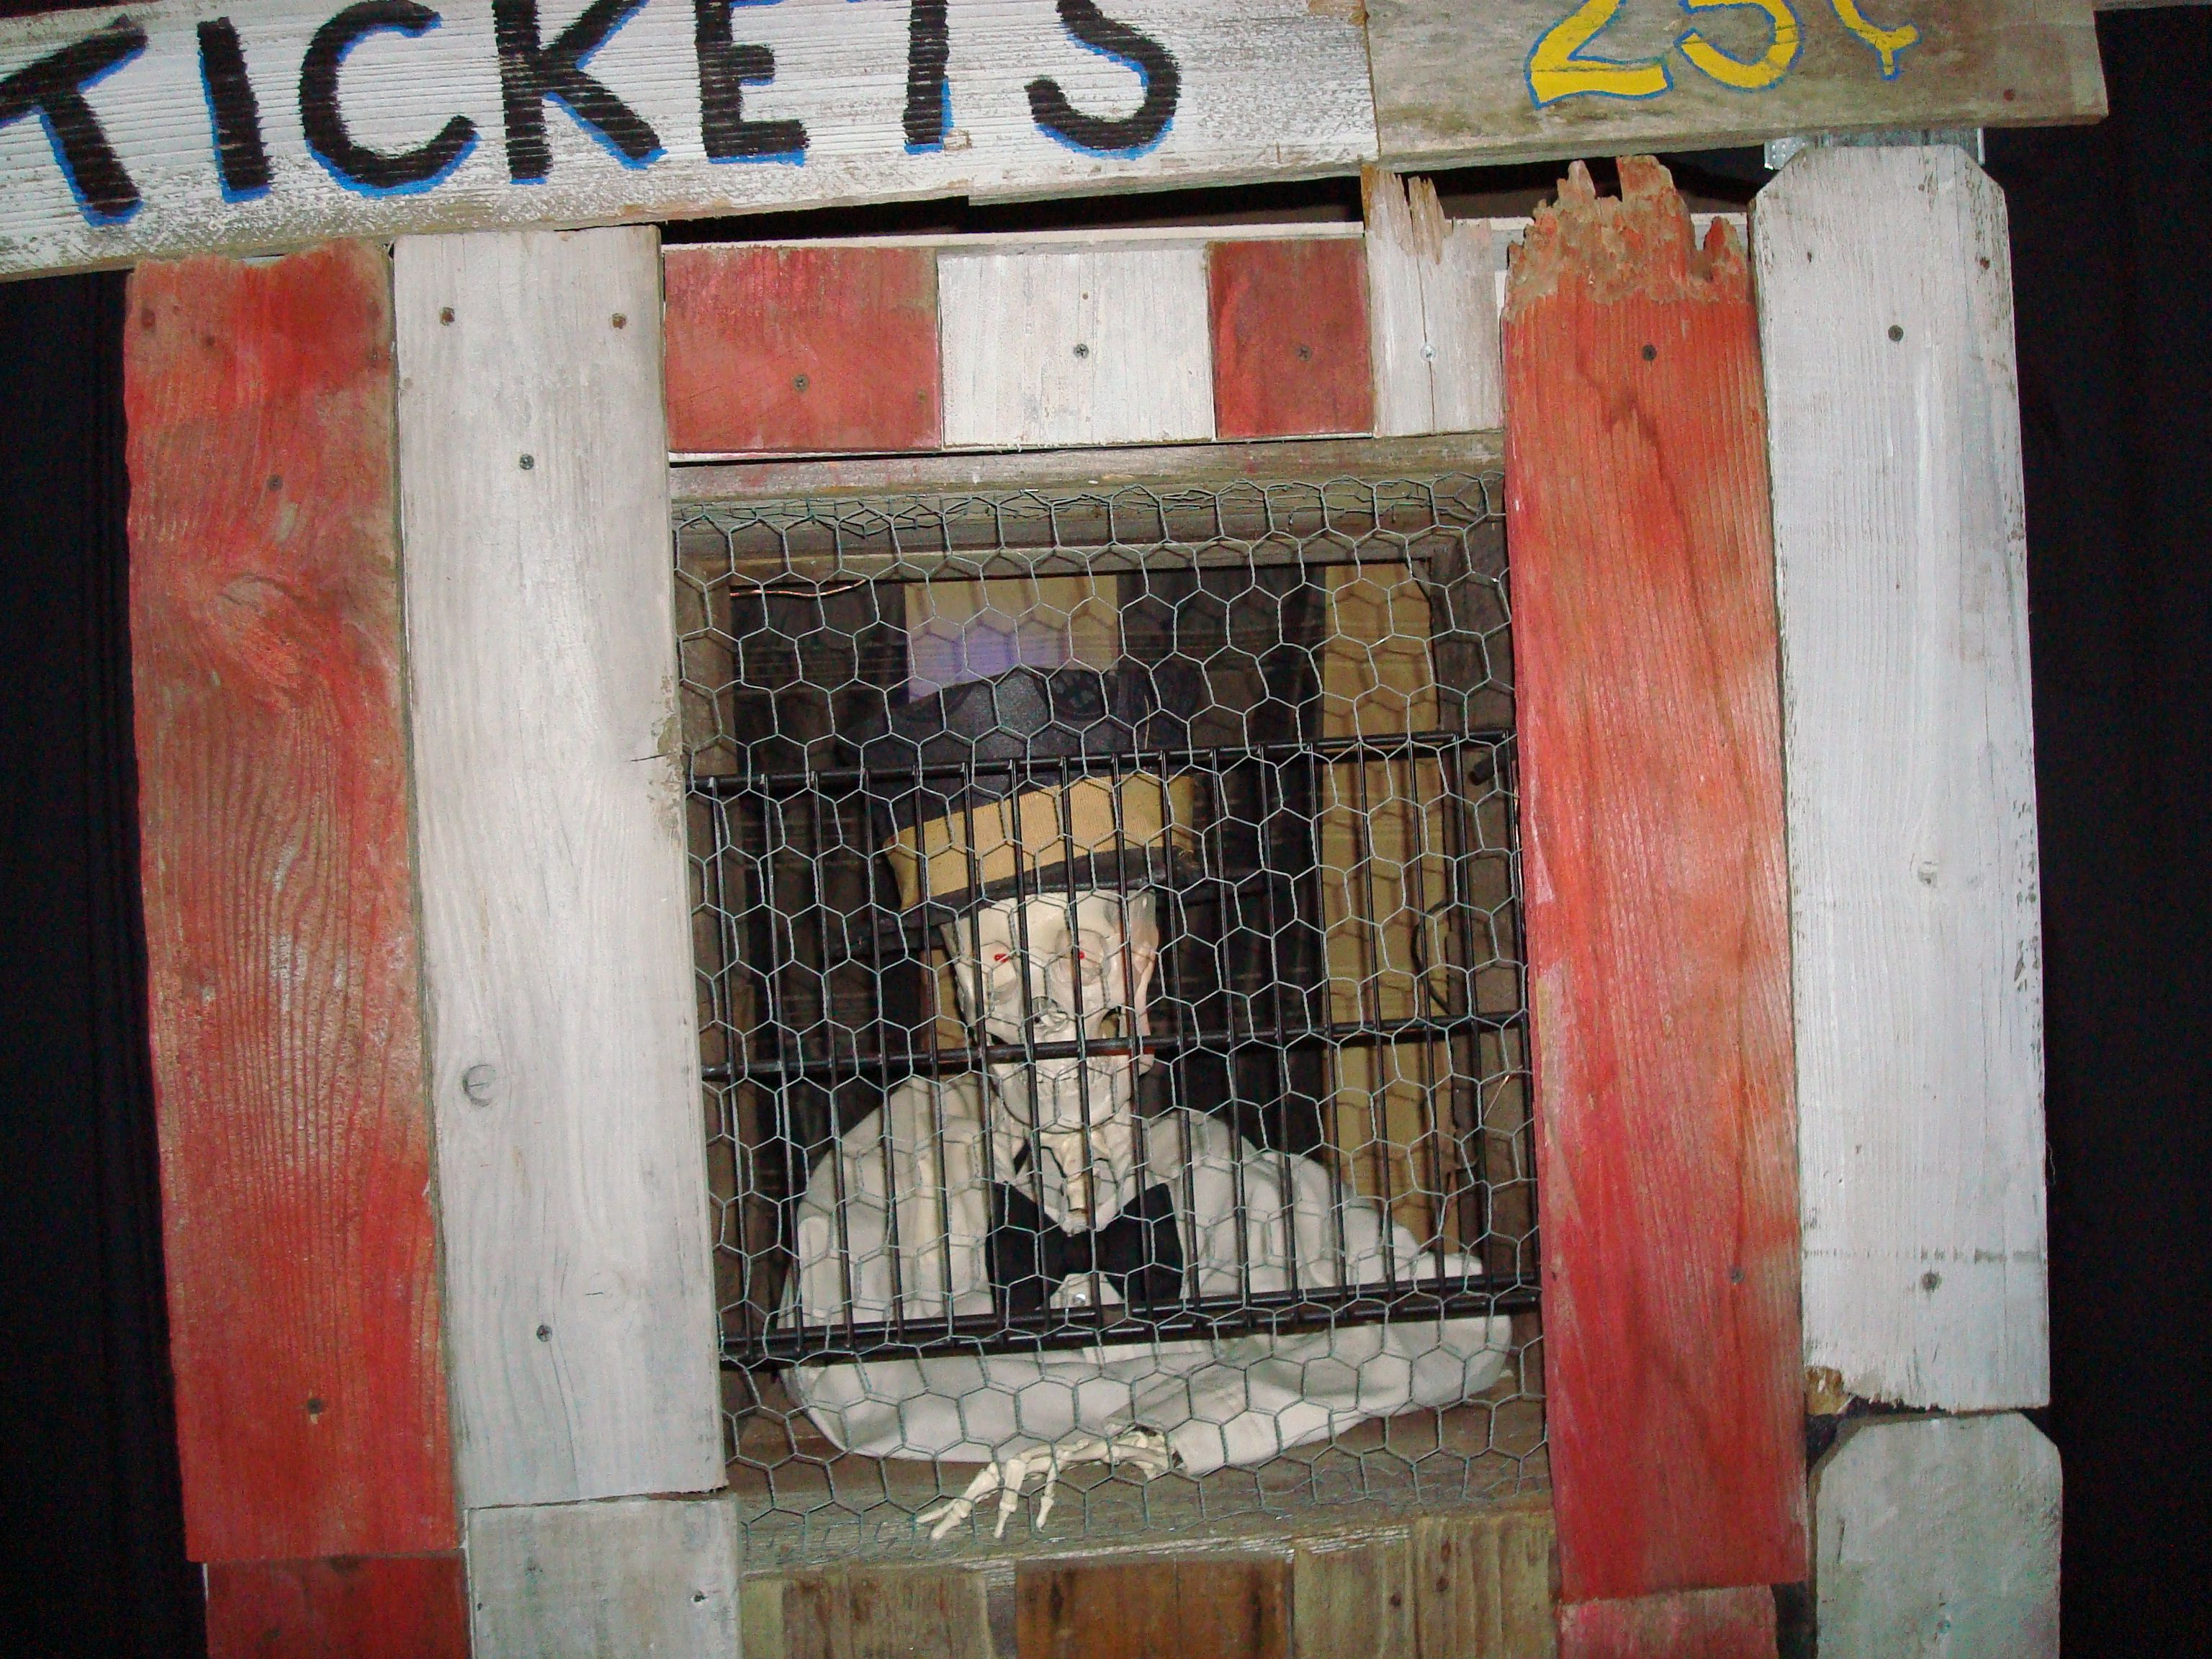 "#Halloween - #Ticket booth - complete with talking skull head, hat, shirt and bow tie. Turned his head and said. ""Step right up and get your ticket a show to die for"" #Halloween ideas"